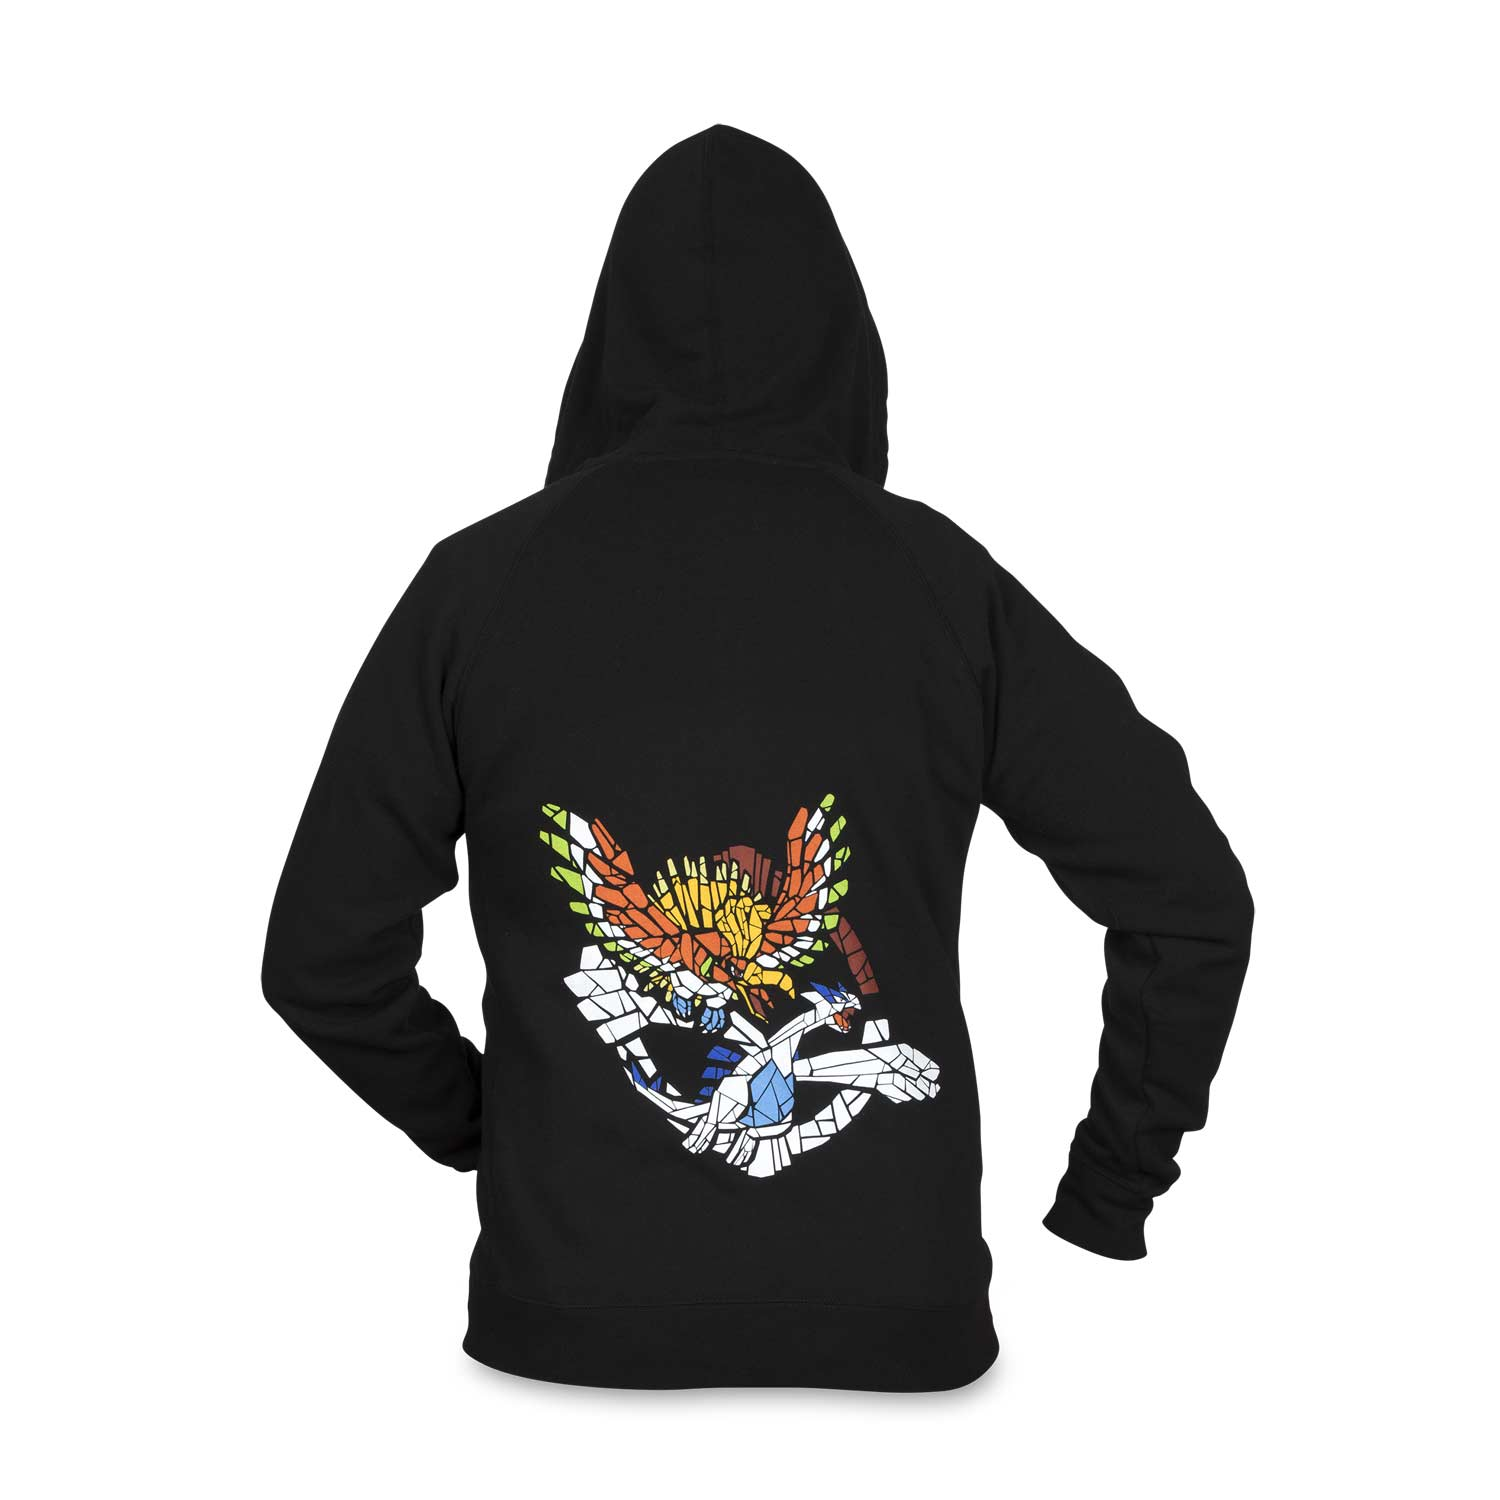 51564847 Ho-Oh & Lugia Mosaic Guardians Fitted Hoodie - Adult S